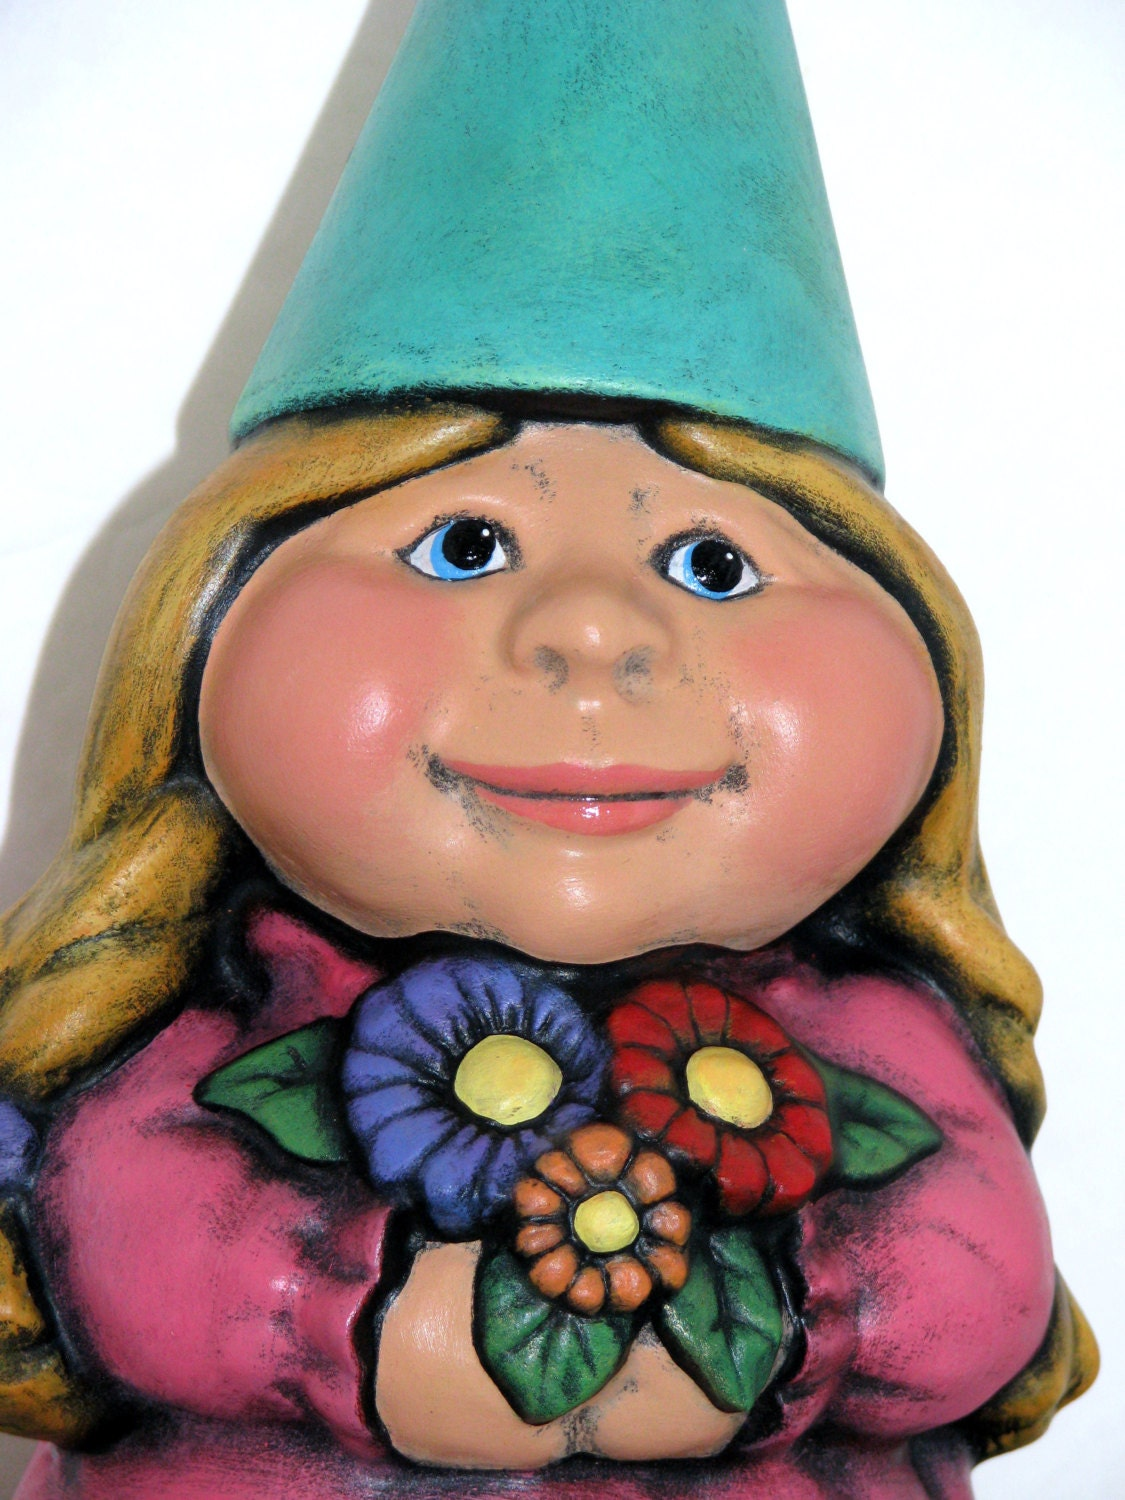 Female Garden Gnomes: Ceramic Female Garden Gnome 11 Inches Hand Painted Lawn Or